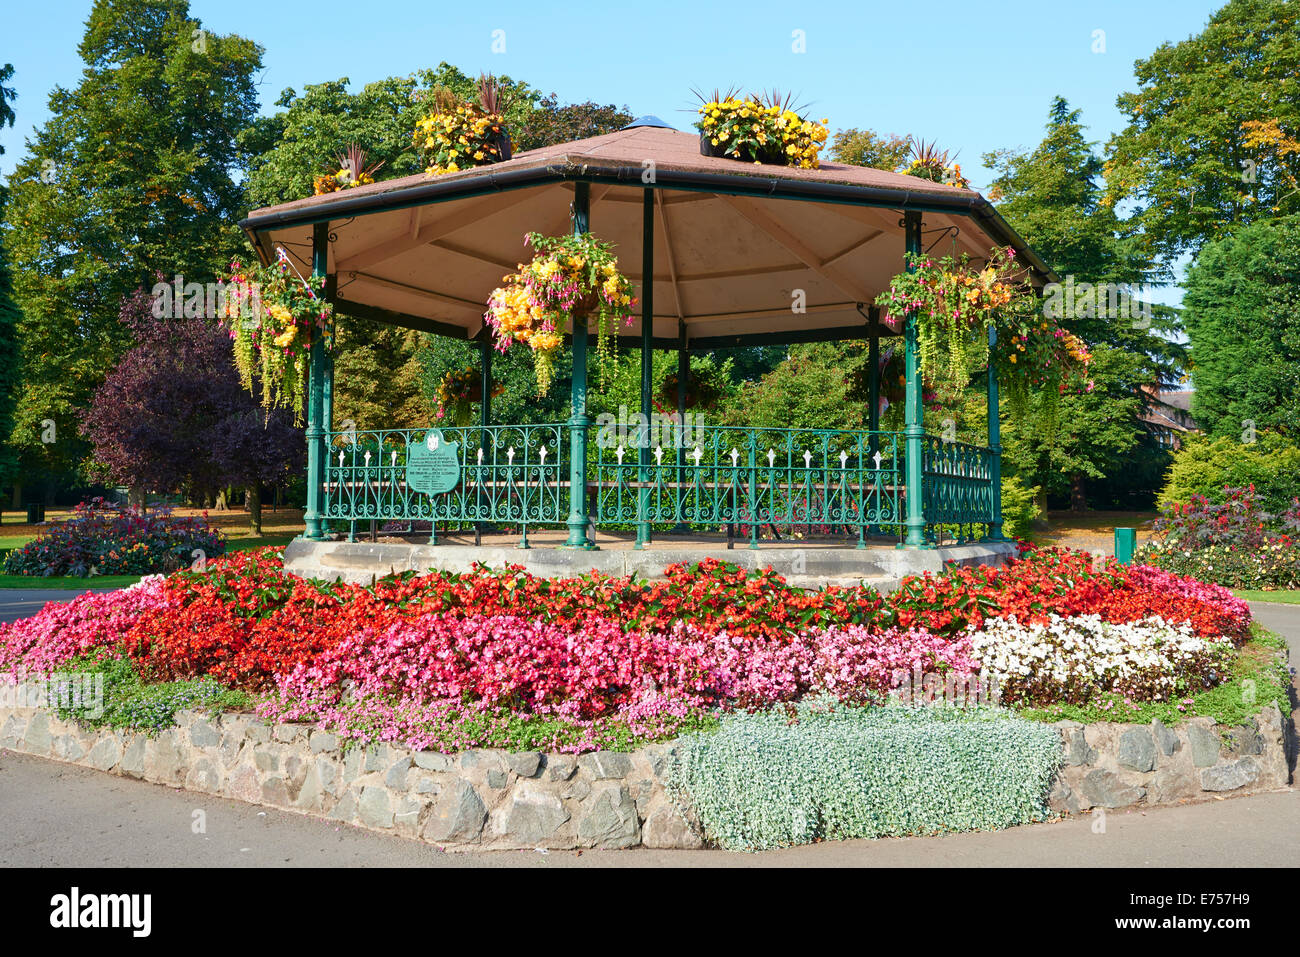 Bandstand Presented By William Wooton For The Coronation Of King Edward In 1902 Queen's Park Loughborough Leicestershire - Stock Image